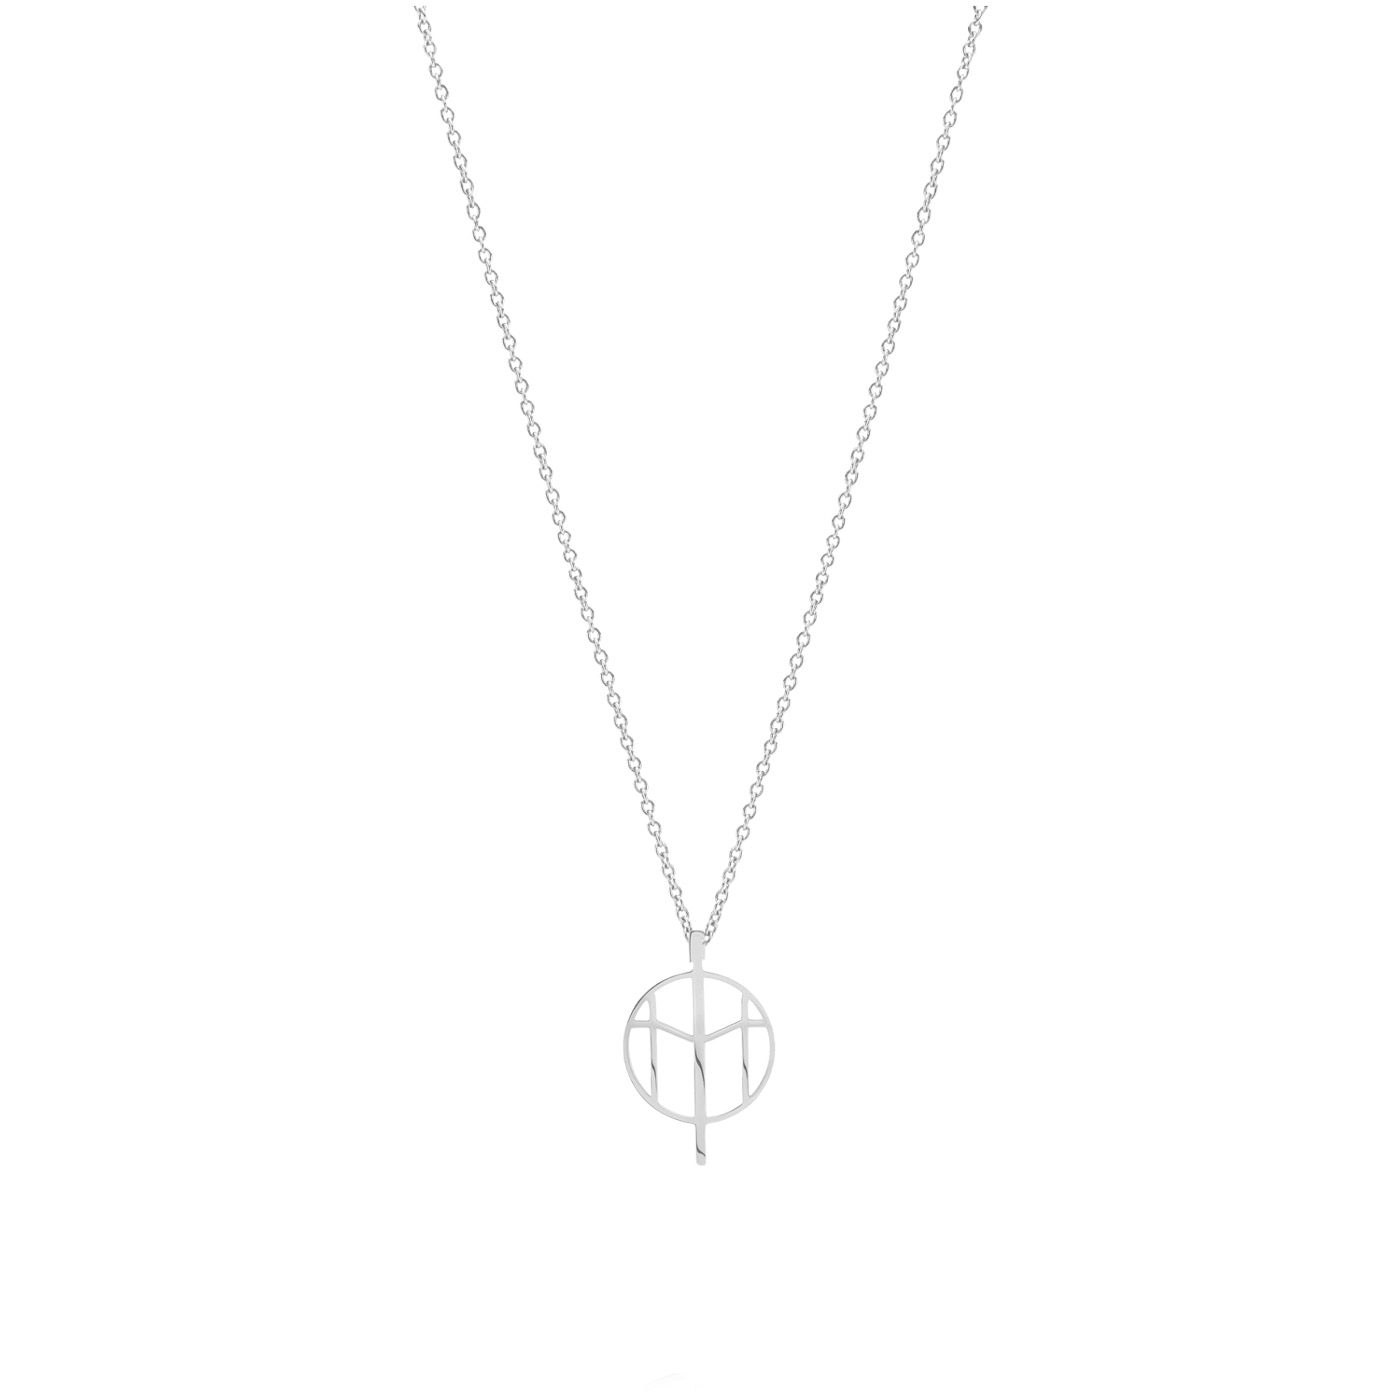 M-Necklace-S-Small